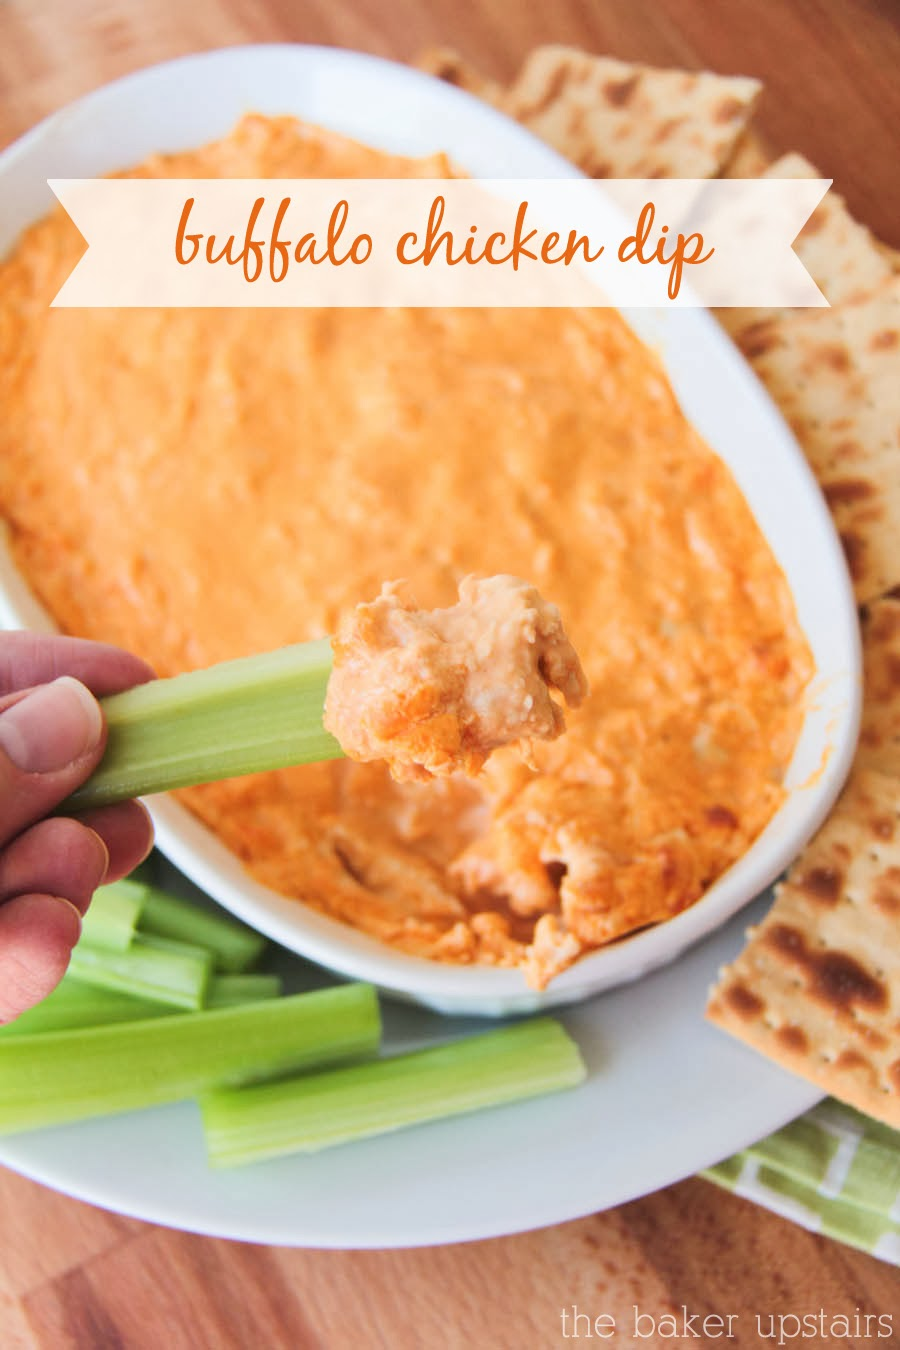 This delicious cheesy and spicy buffalo chicken dip is so easy to make and is a hit at any party!